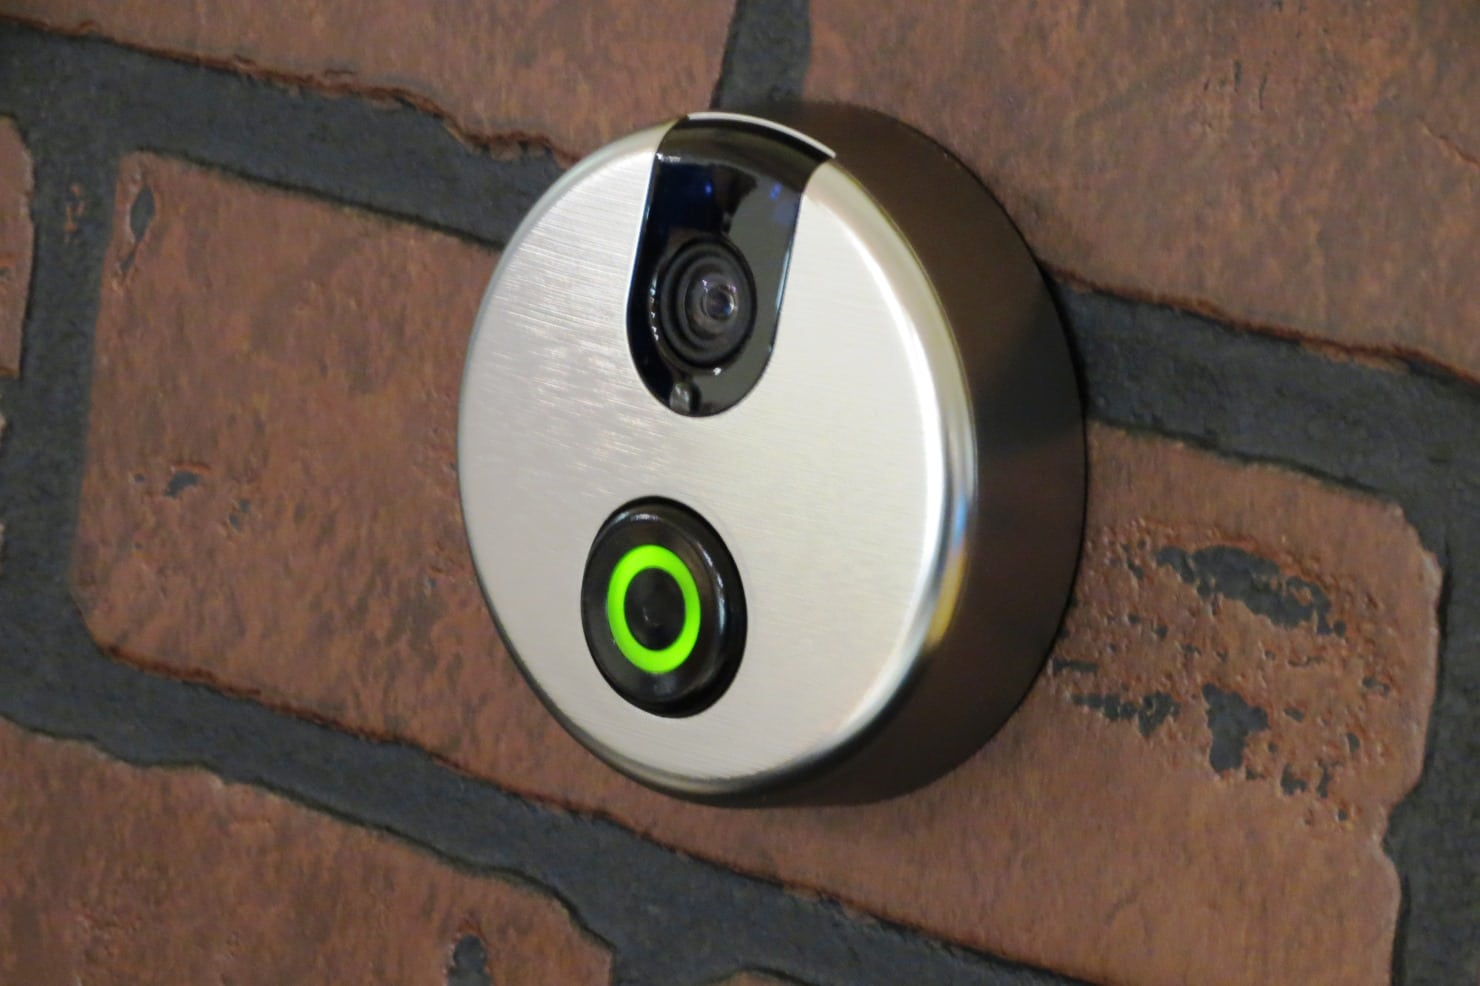 SkyBell Pushing Buttons, Streaming Video